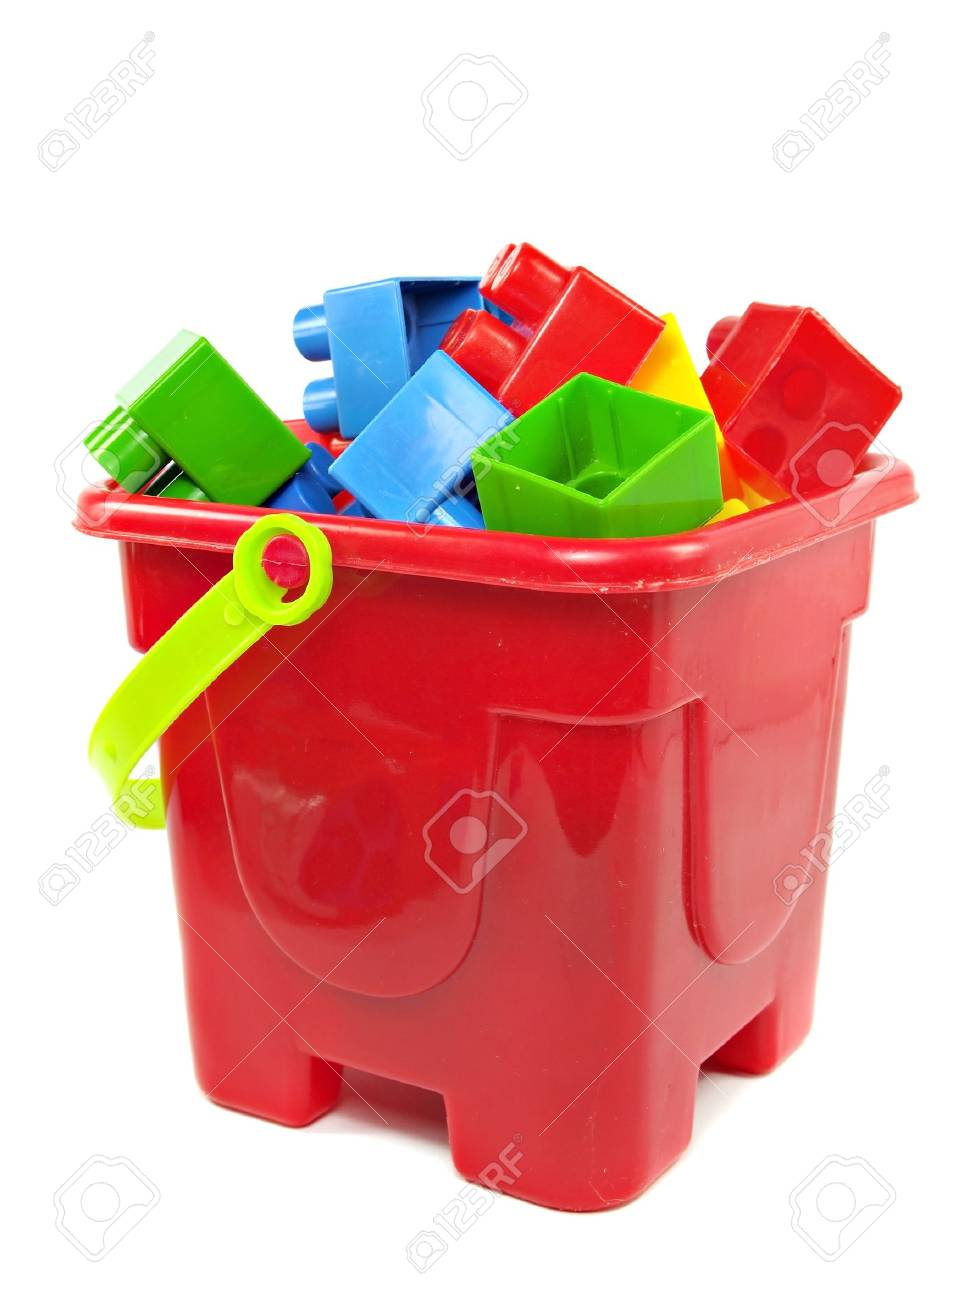 Uncategorized Toy Pail plastic building blocks in red toy pail on a white background stock photo 15554482